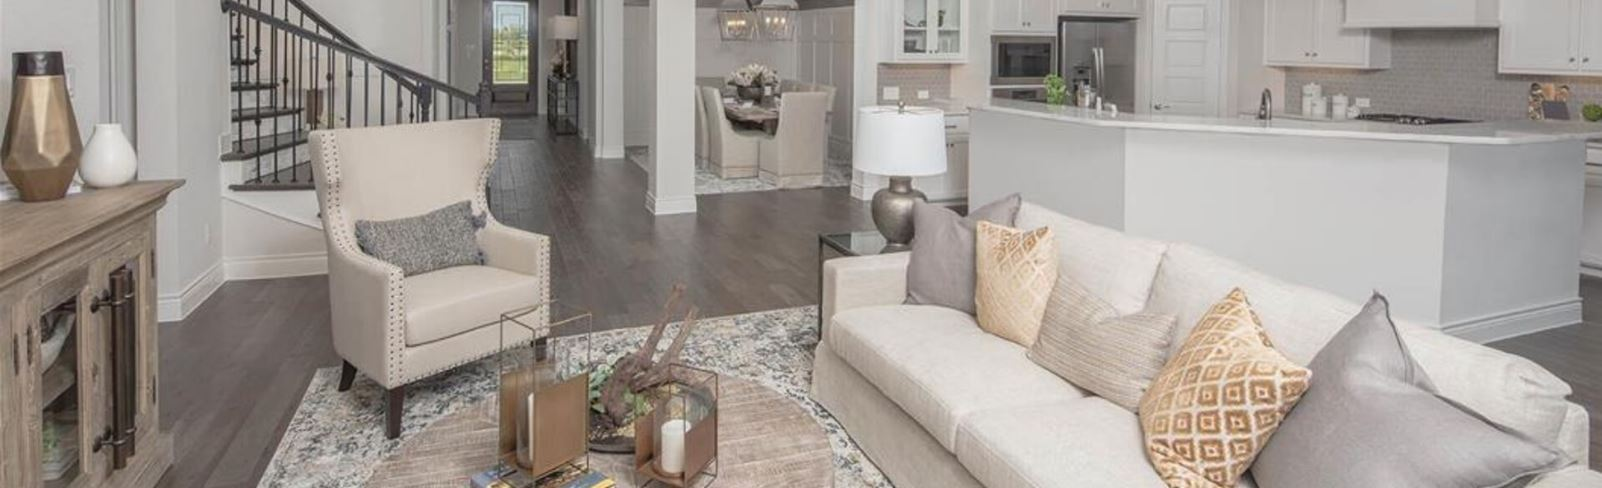 Perry Homes in Hollyhock in Frisco, TX